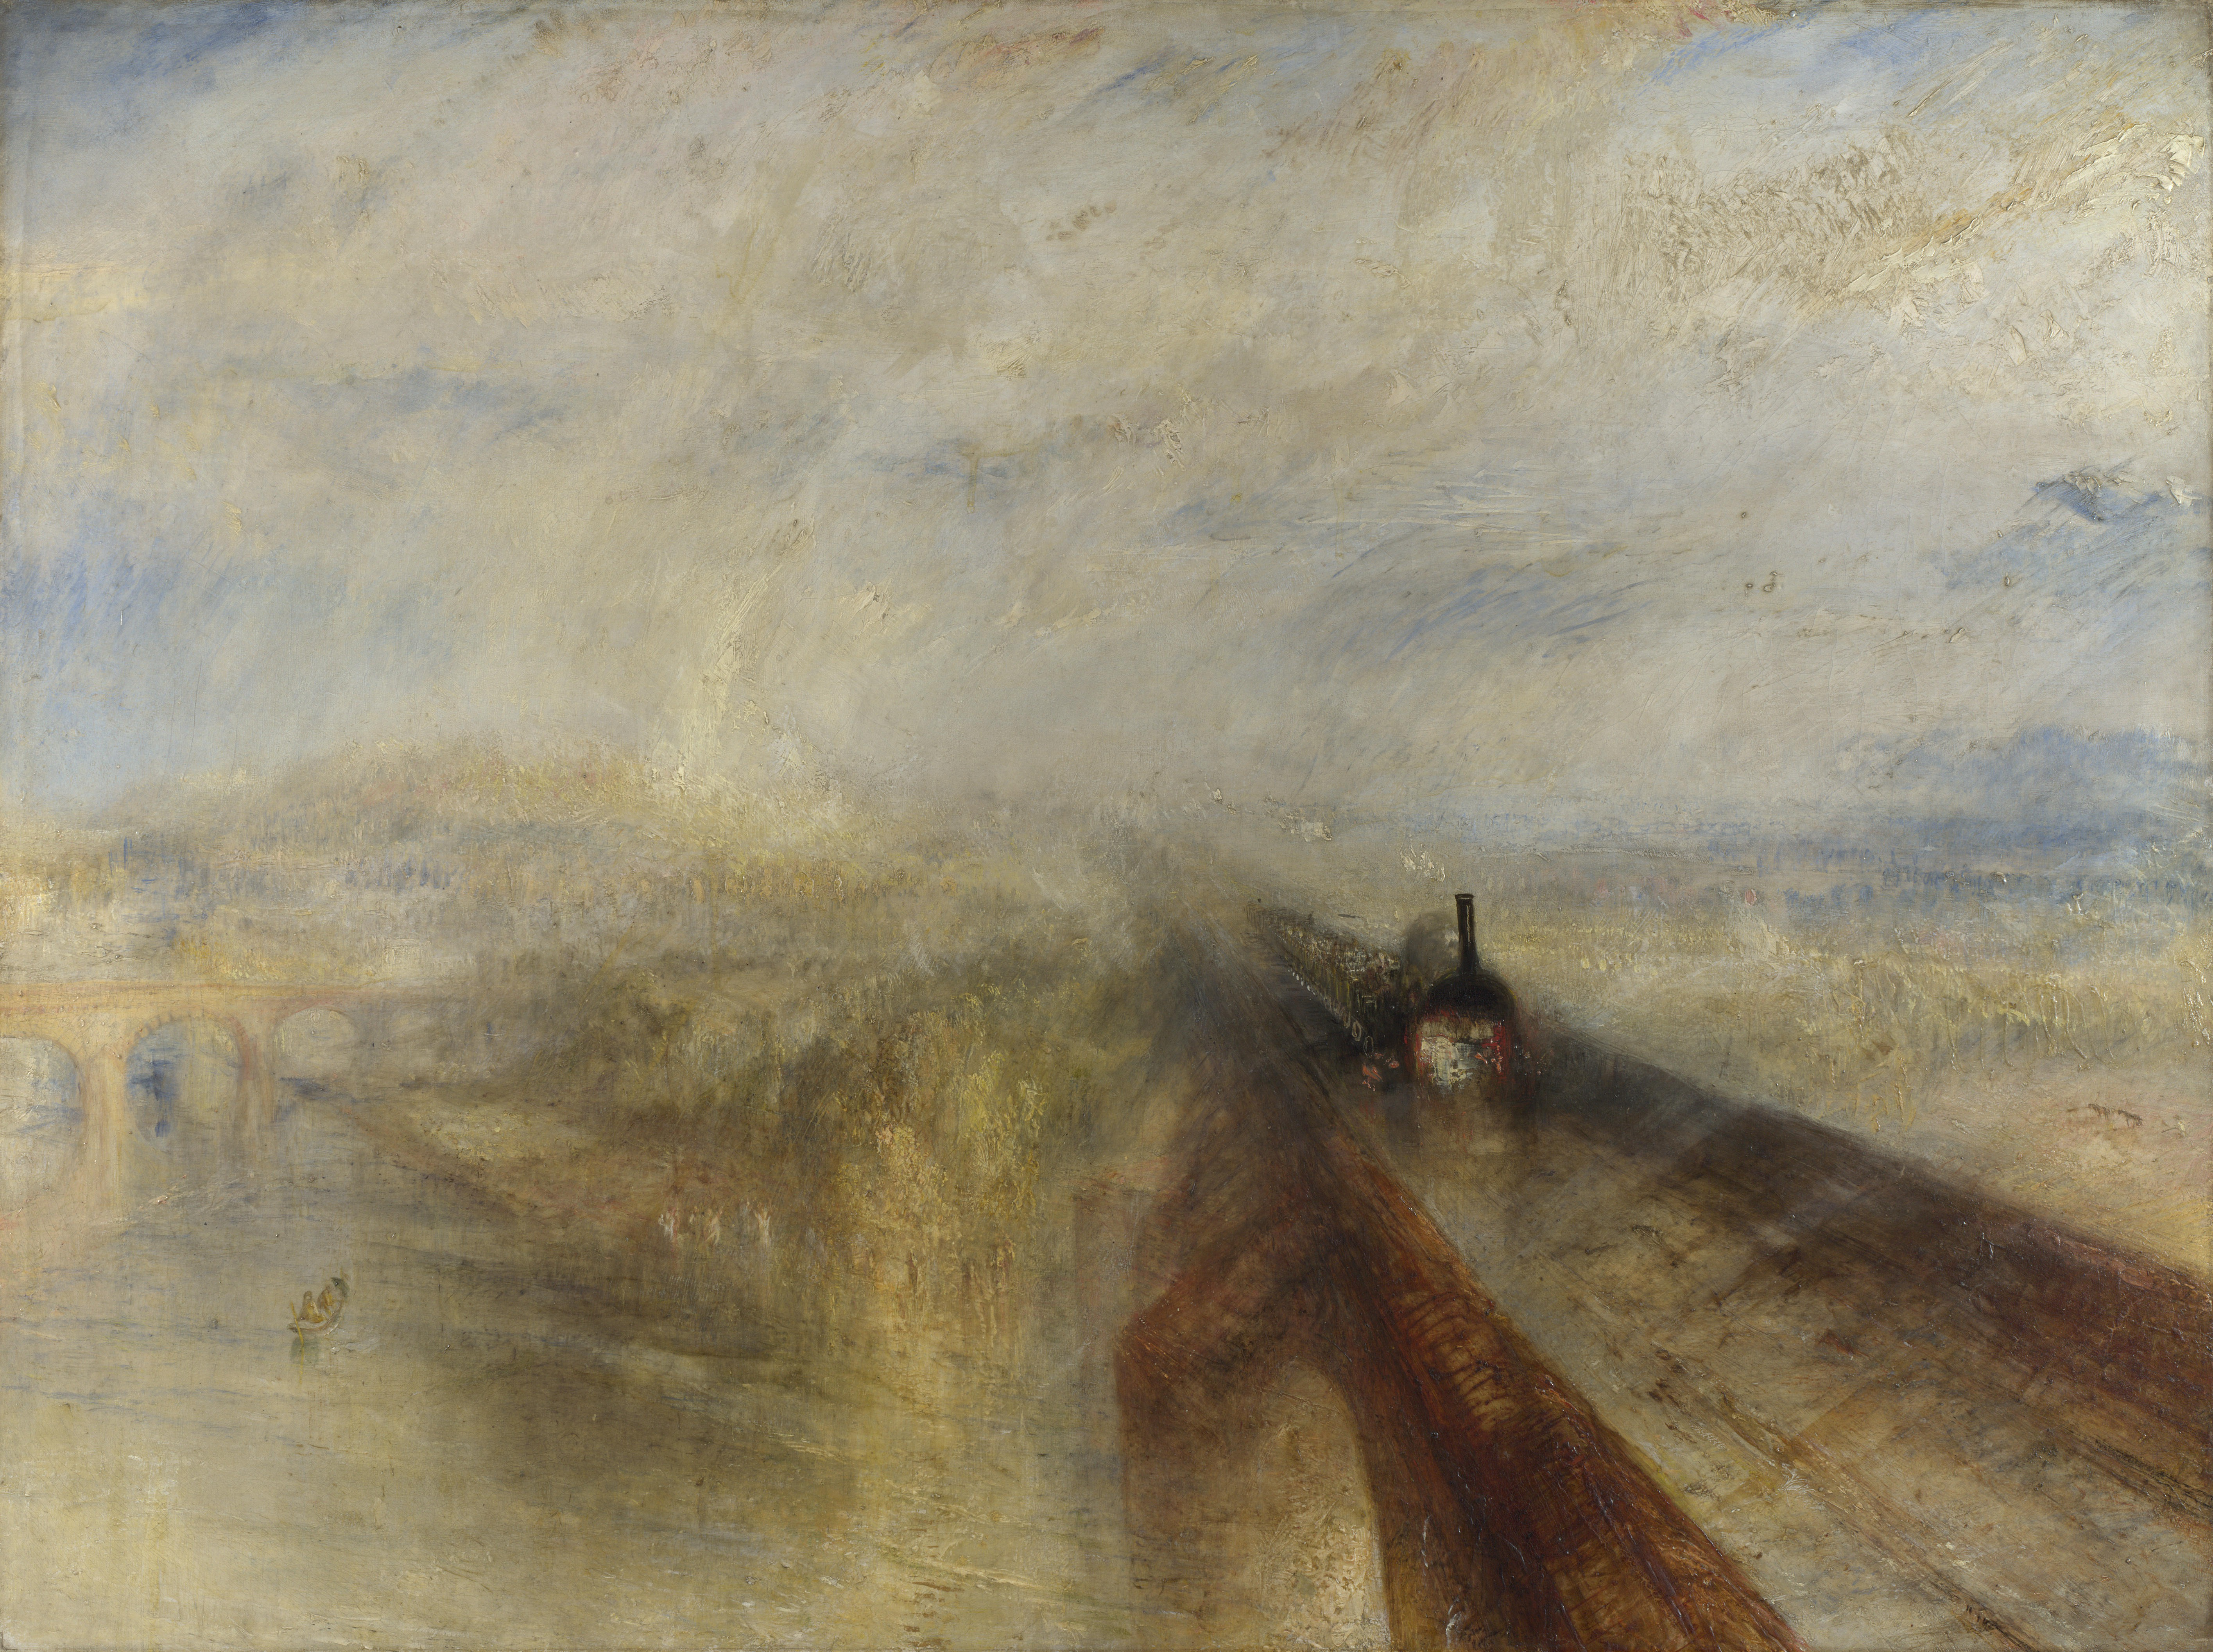 https://upload.wikimedia.org/wikipedia/commons/9/96/Turner_-_Rain%2C_Steam_and_Speed_-_National_Gallery_file.jpg